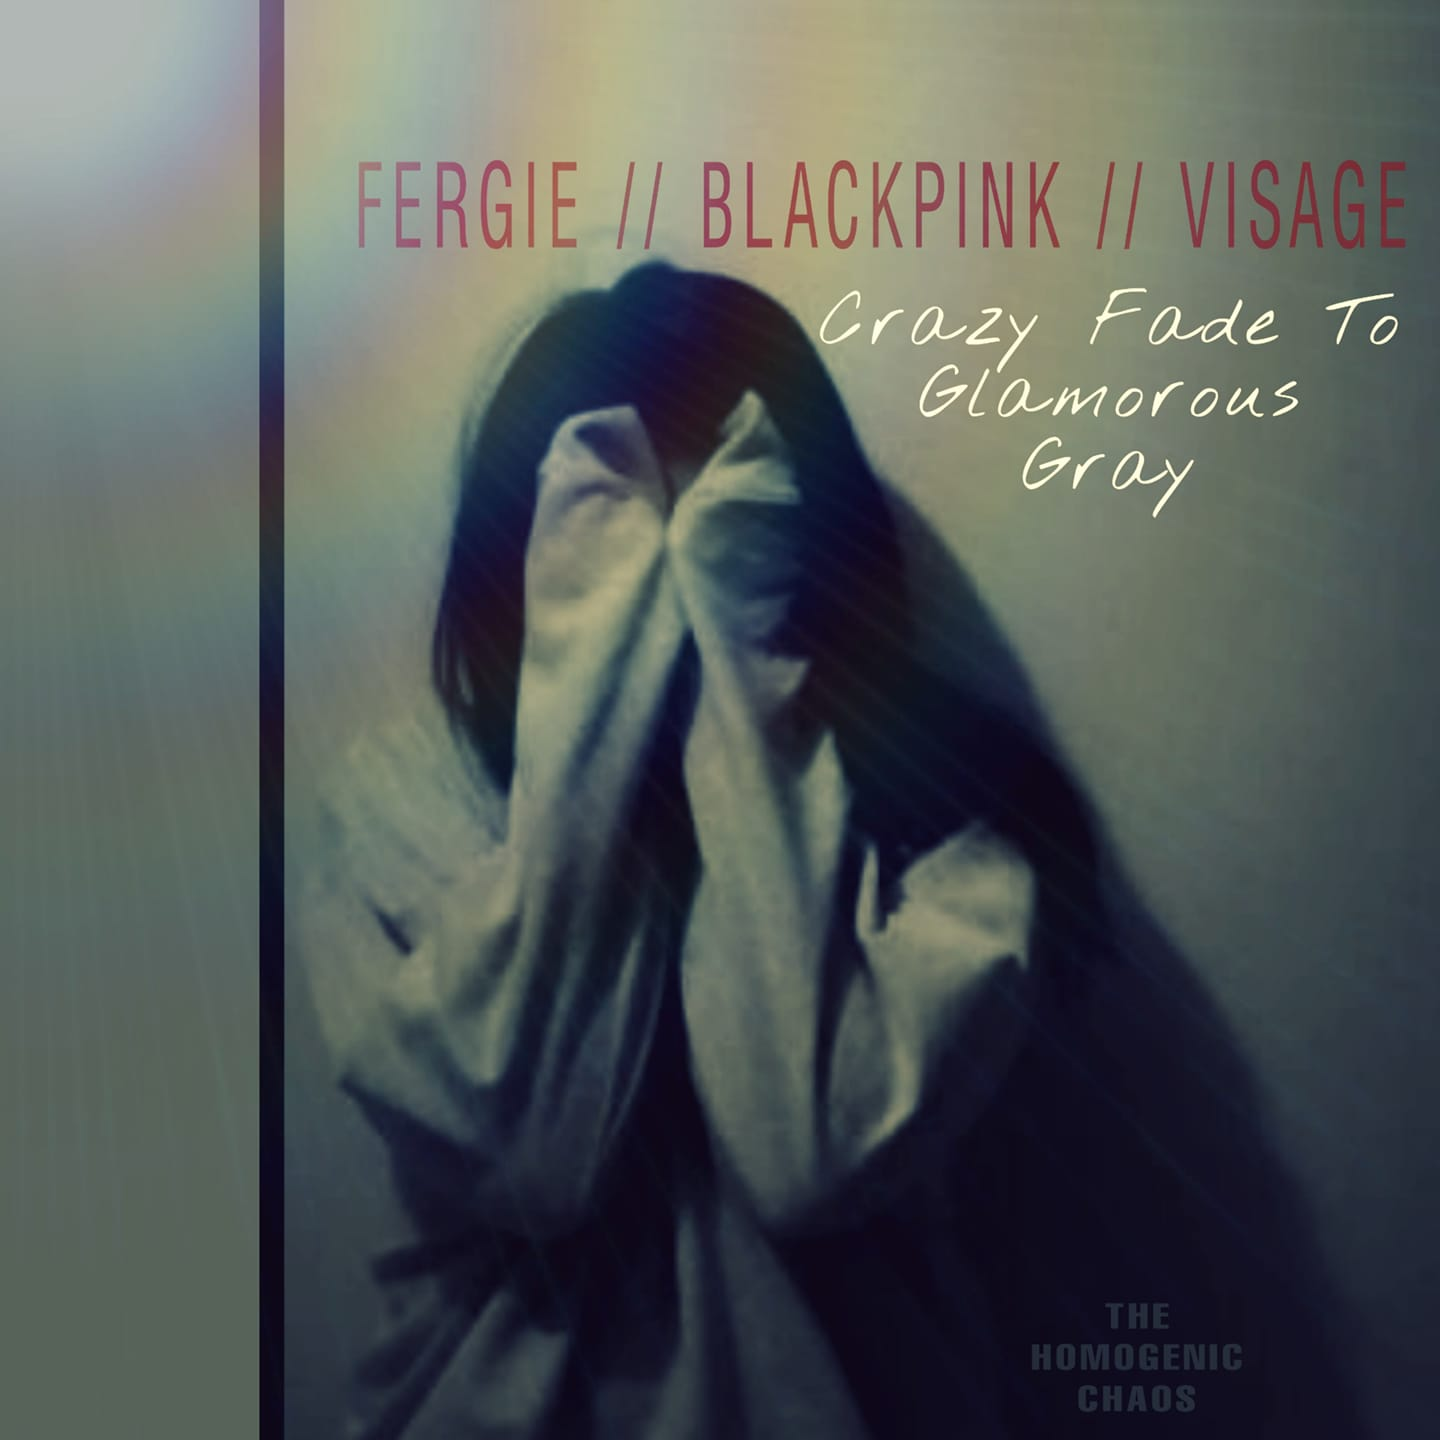 Fergie vs. Blackpink vs. Visage - Crazy Fade To Glamorous Gray (Mashup by The Homogenic Chaos)